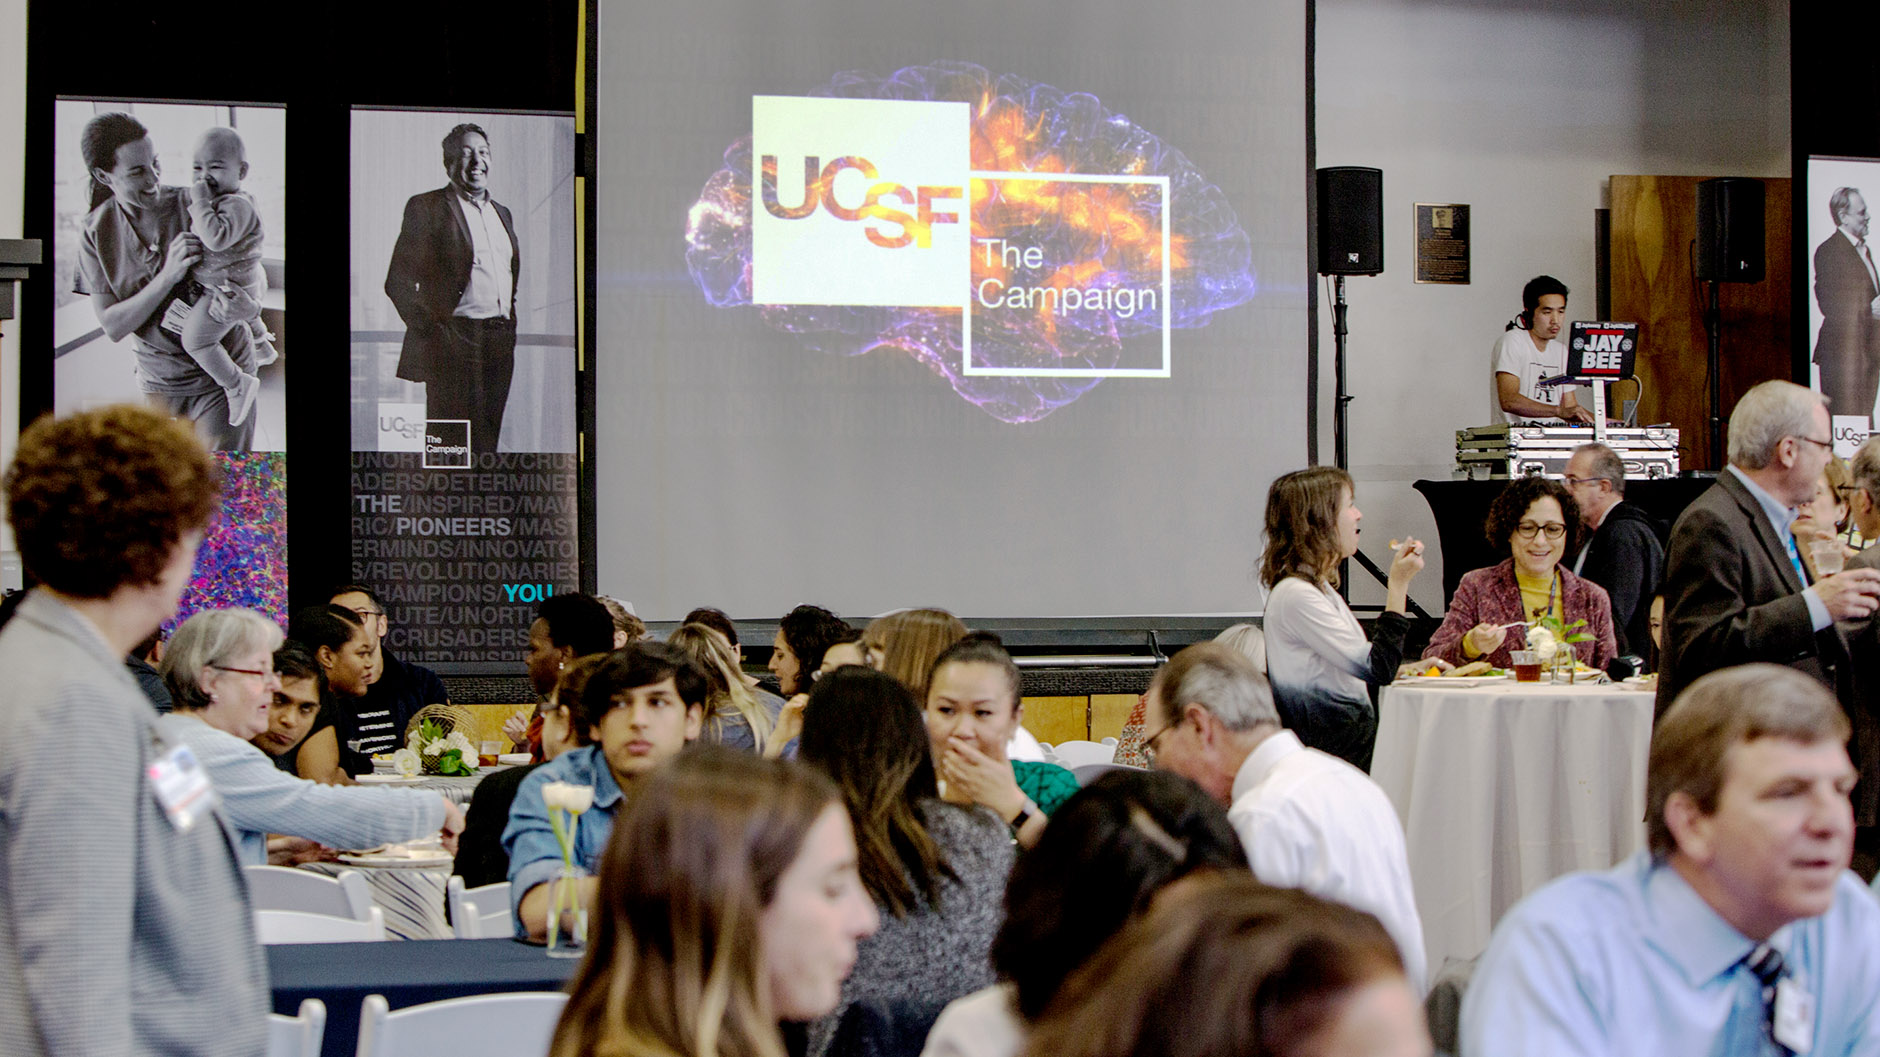 people eat in a room with a screen that says UCSF: The Campaign behind them